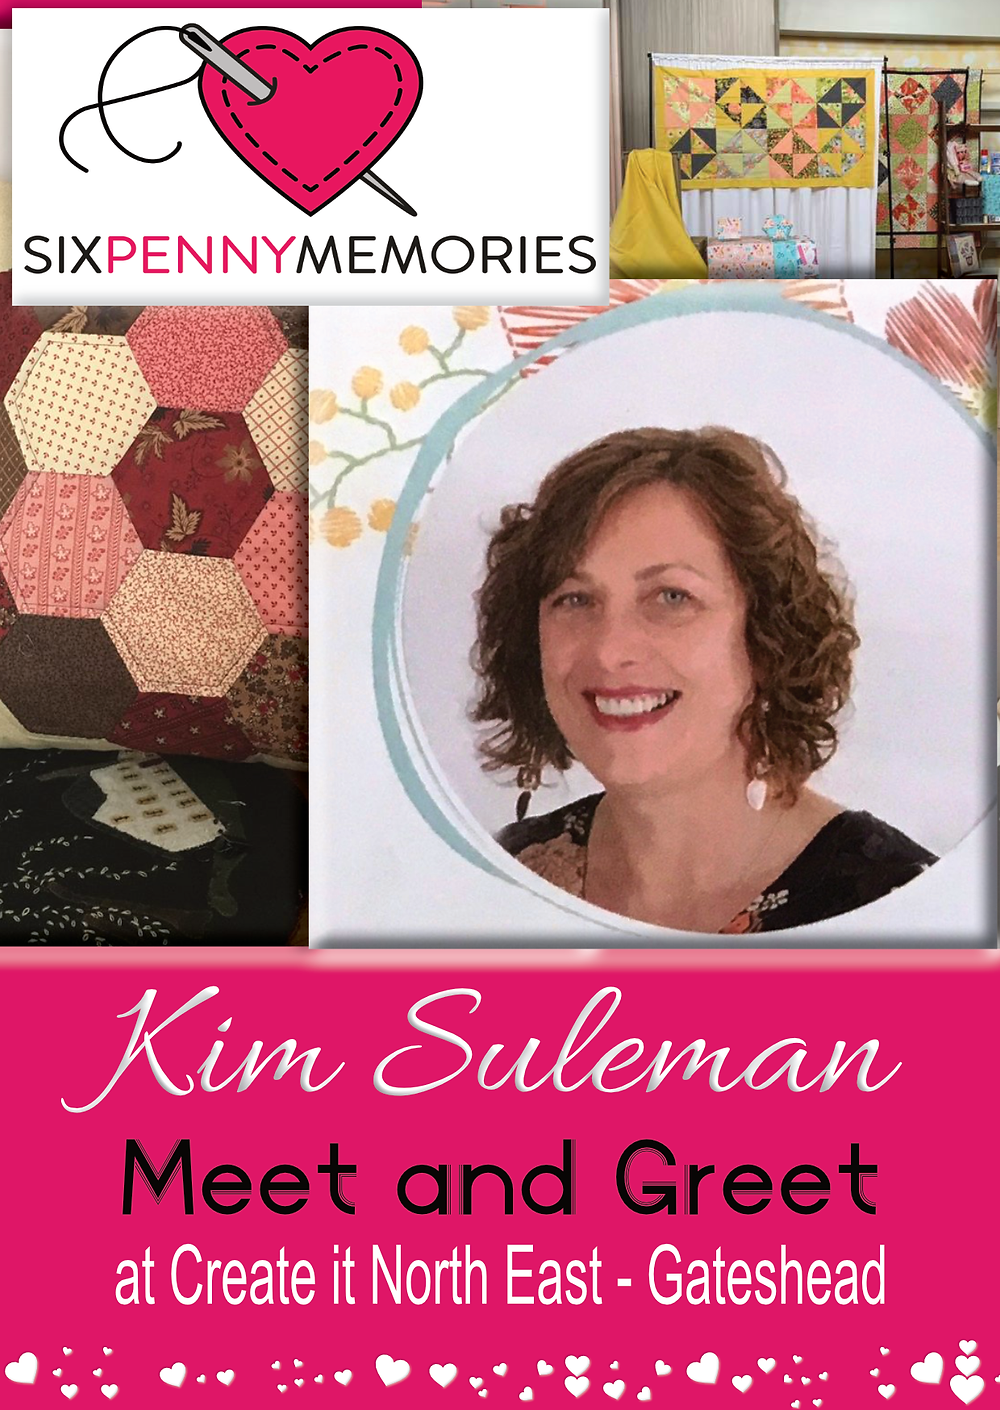 kim Suleman from Six Penny Memories at Create it North East